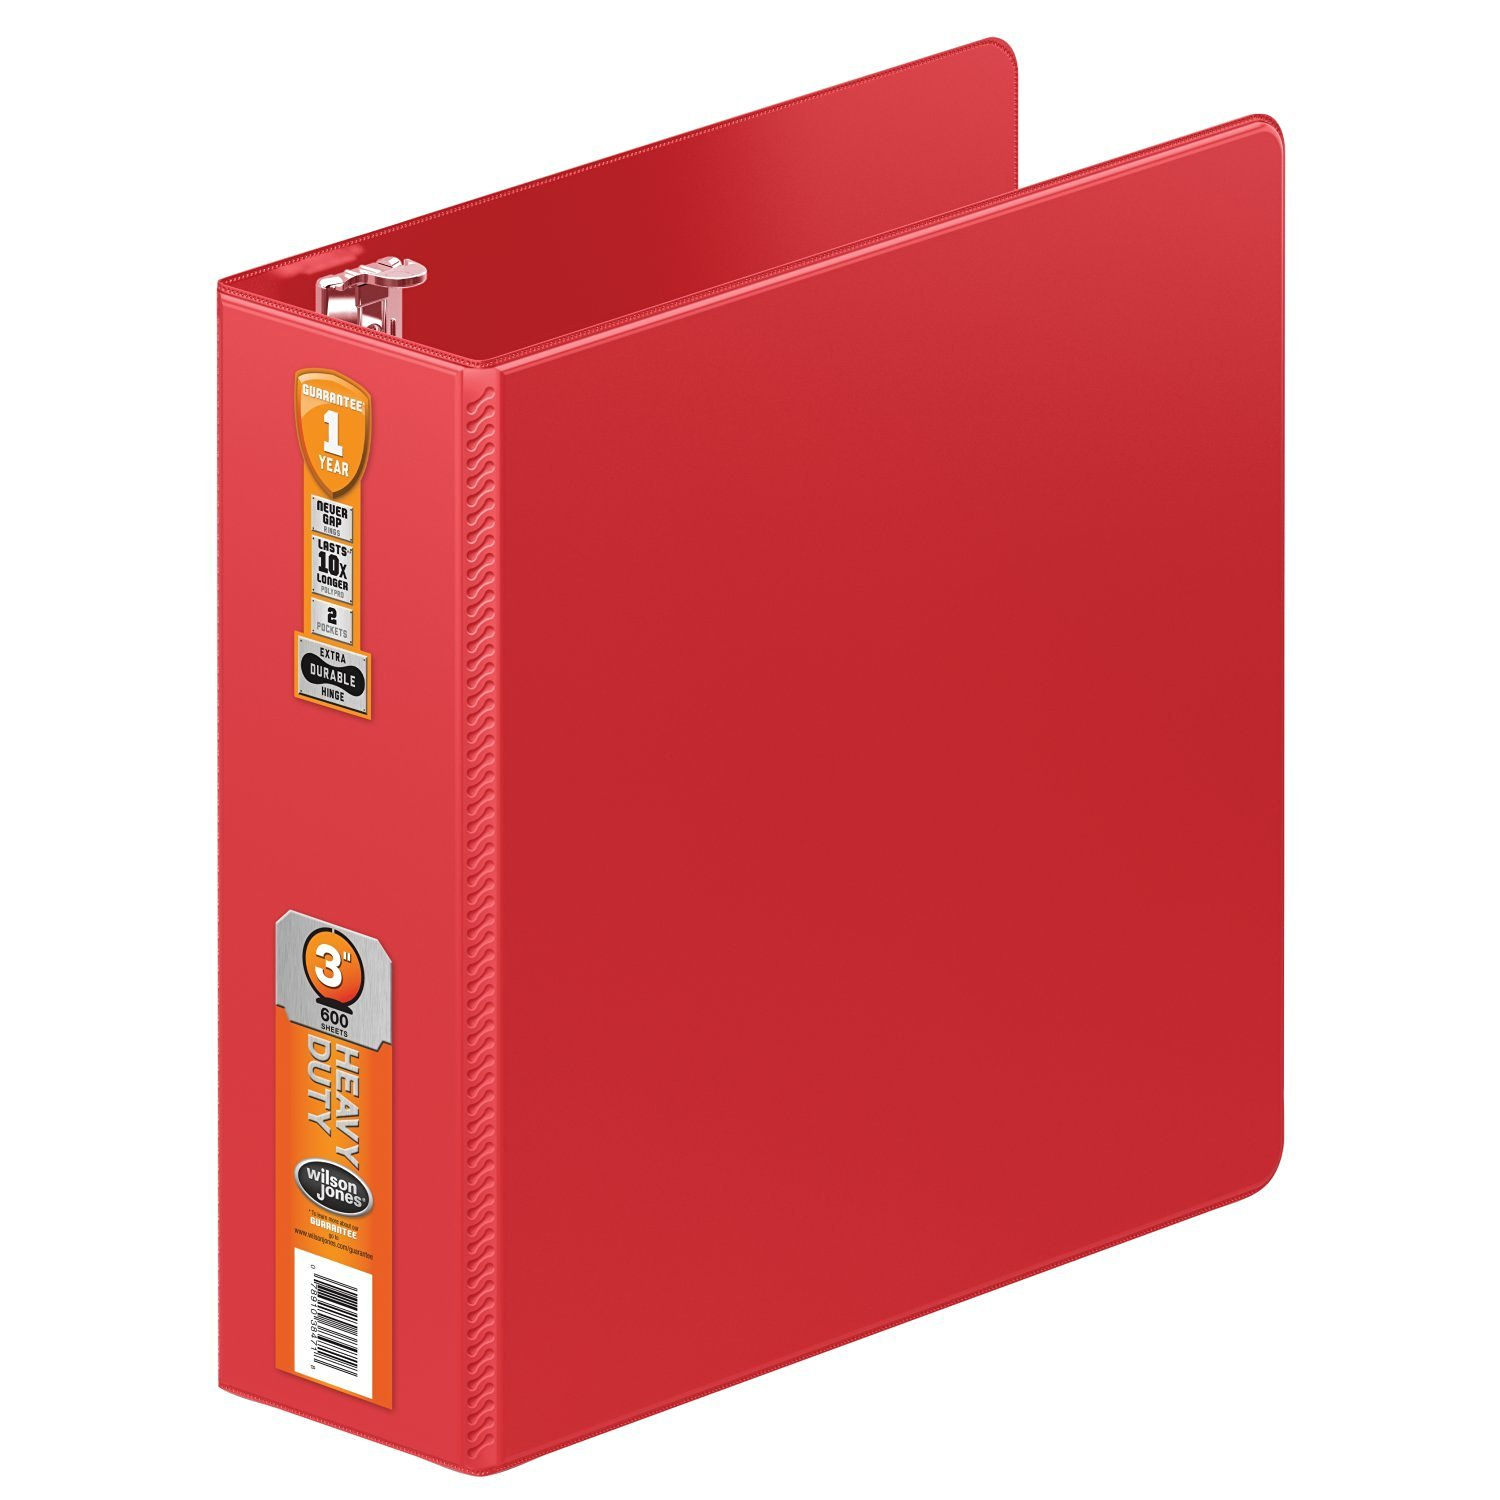 Wilson Jones Heavy Duty Round Ring Binder with Extra Durable Hinge, 3-Inch, Red (W364-49-1797)